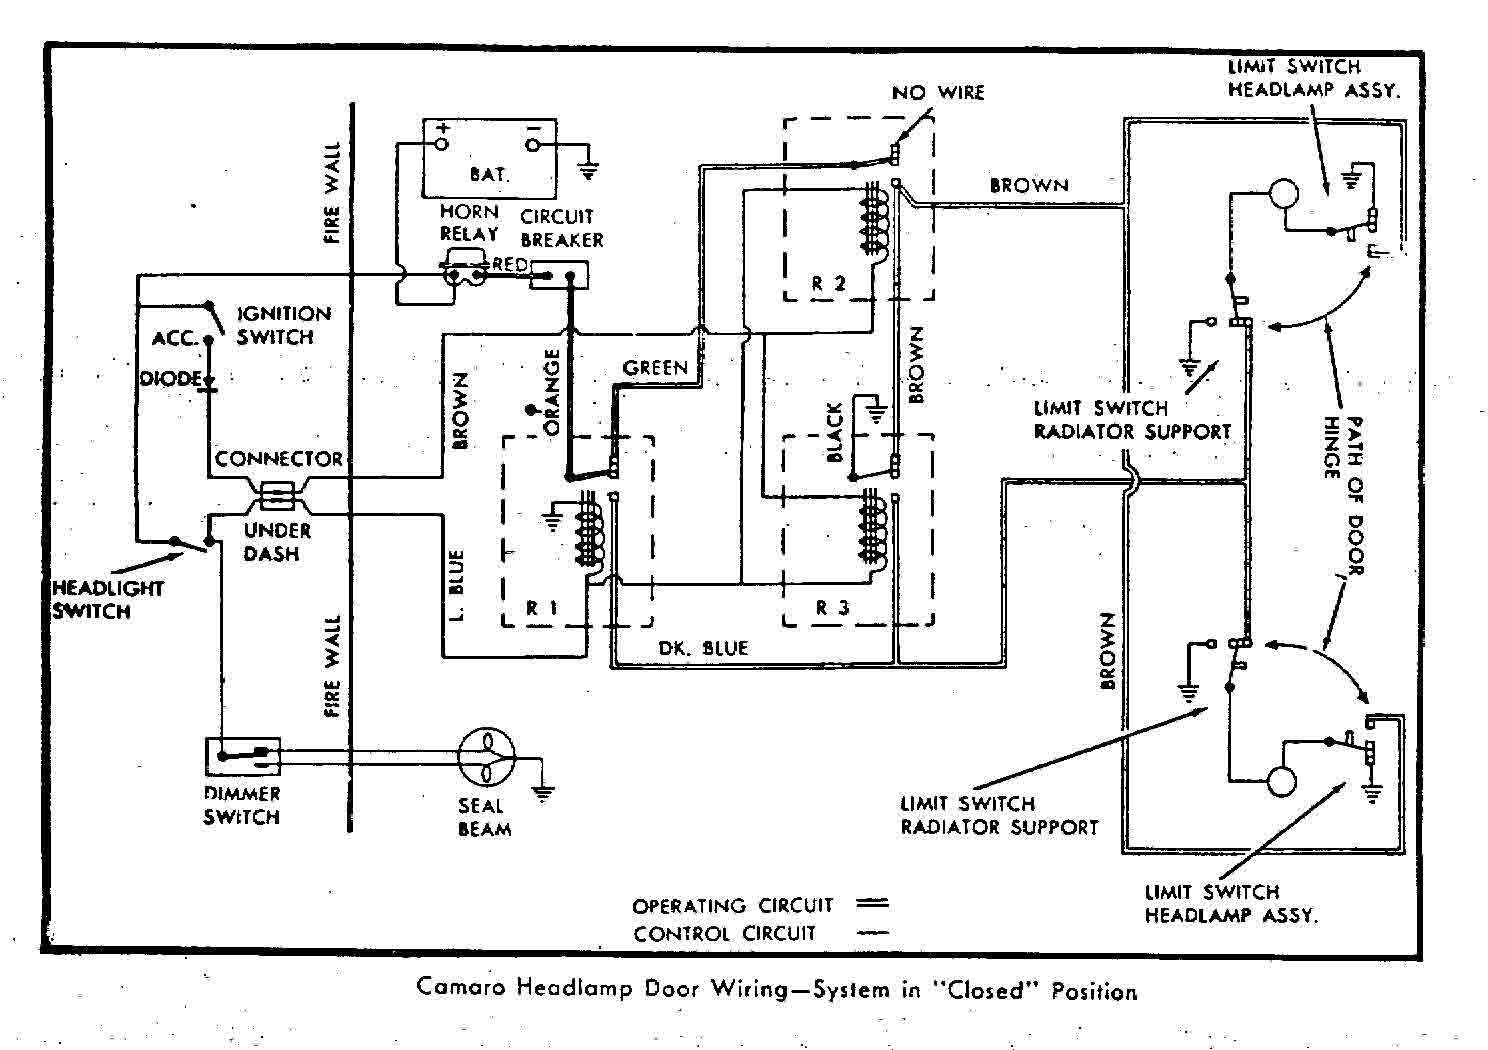 67 camaro horn relay diagram wiring circuit u2022 rh ericruizgarcia co 1968 Camaro Wiring Diagram Online 1969 Camaro Dash Wiring Diagram